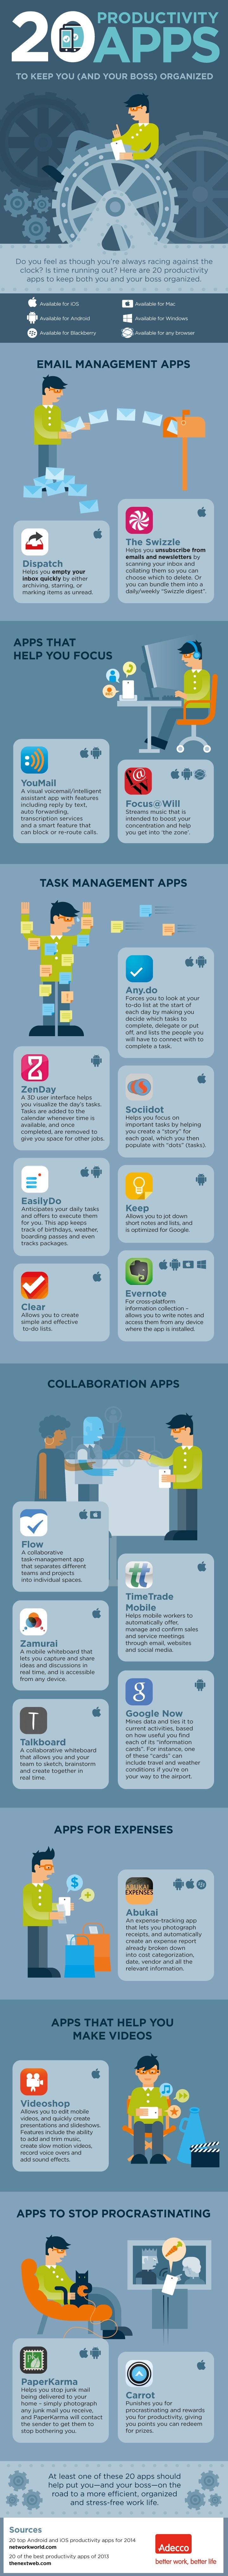 Infographic: 20 Productivity Apps To Keep You (And Your Boss) Organized #infographic